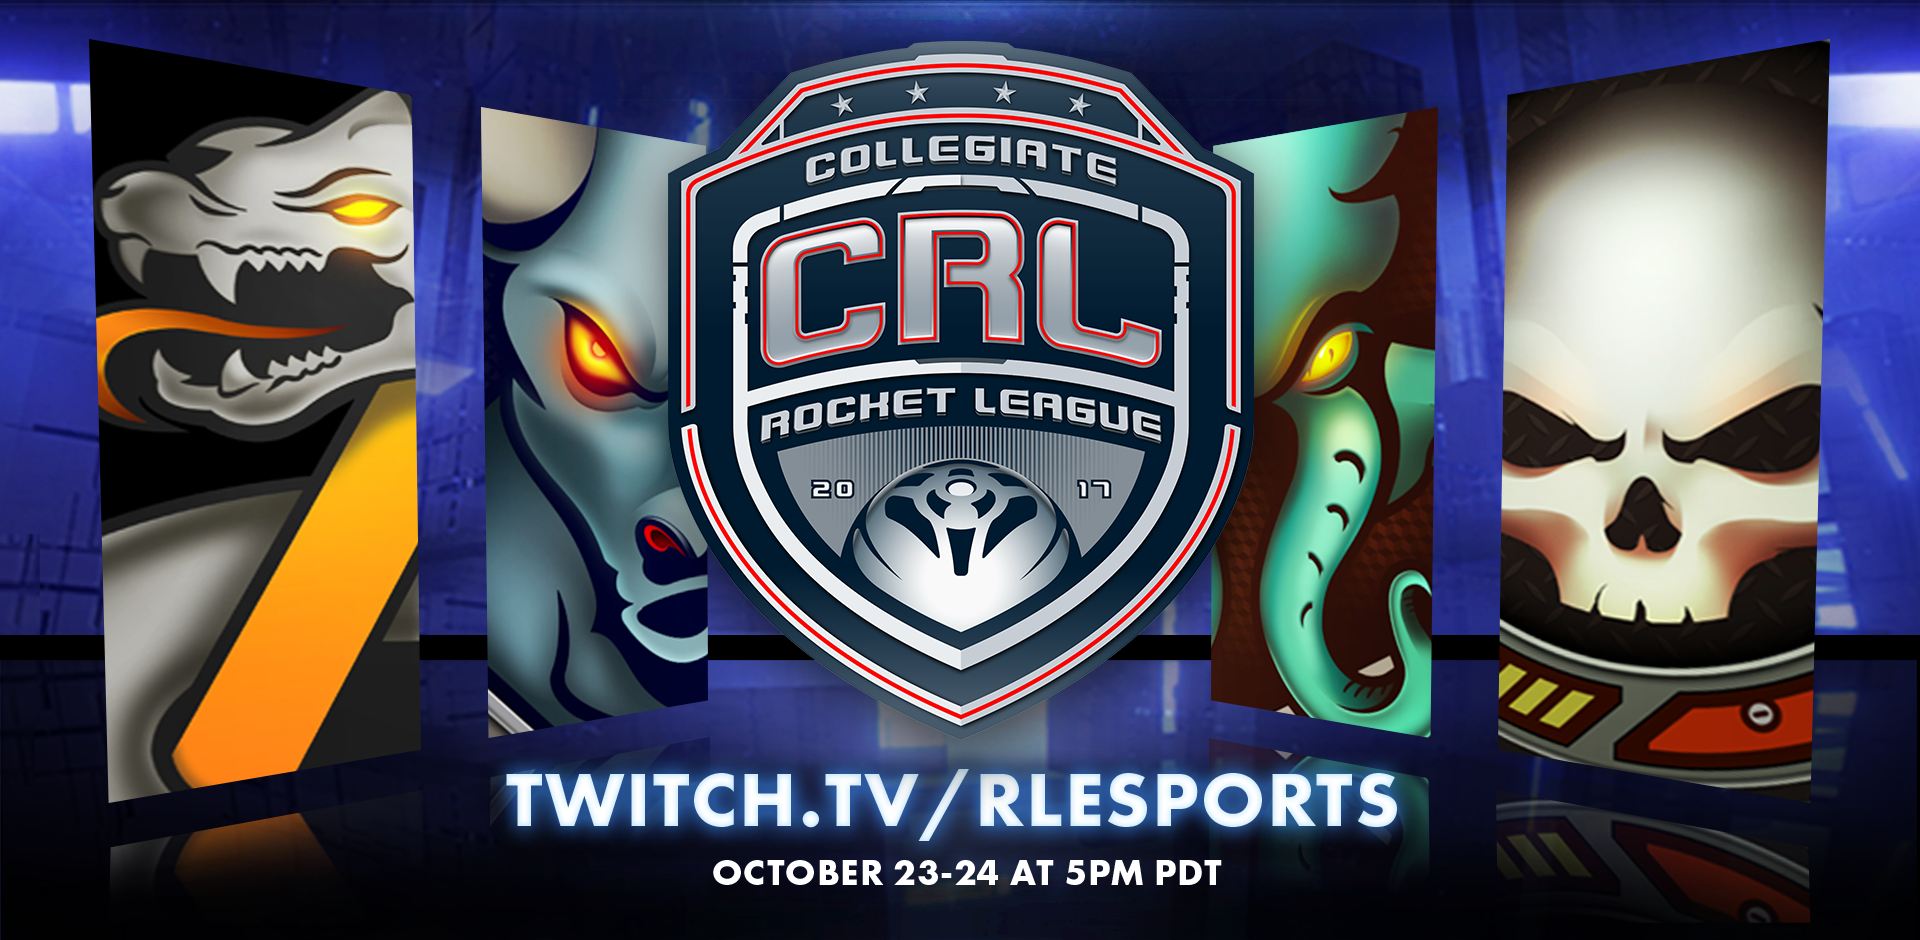 League Play Begins for Collegiate Rocket League Image